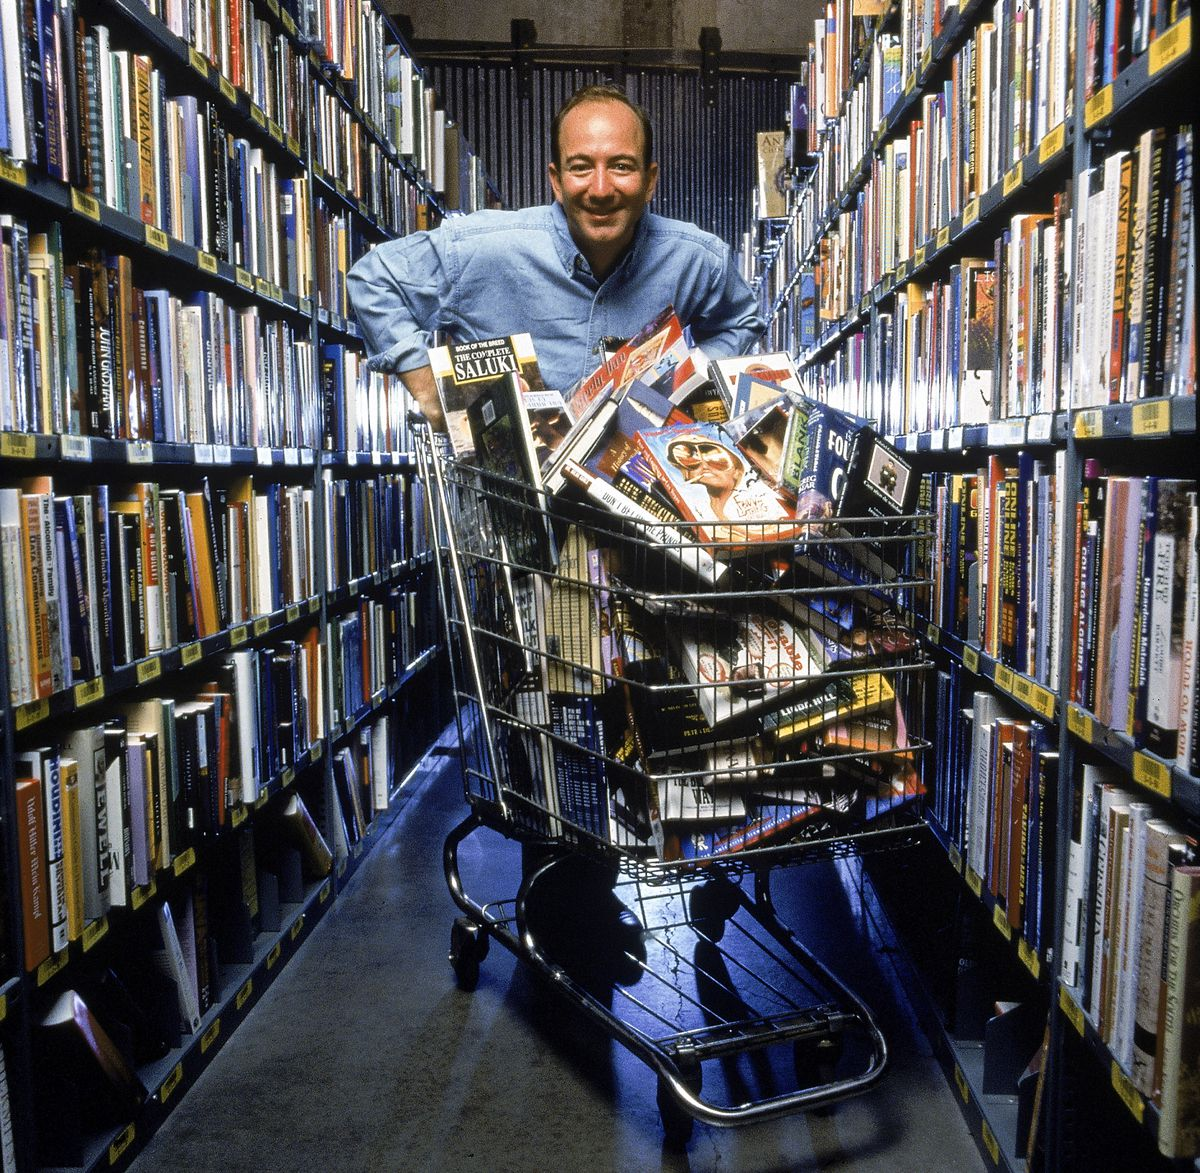 Amazon.com CEO Jeff Bezos pushing a shopping cart full of books back in 1998.